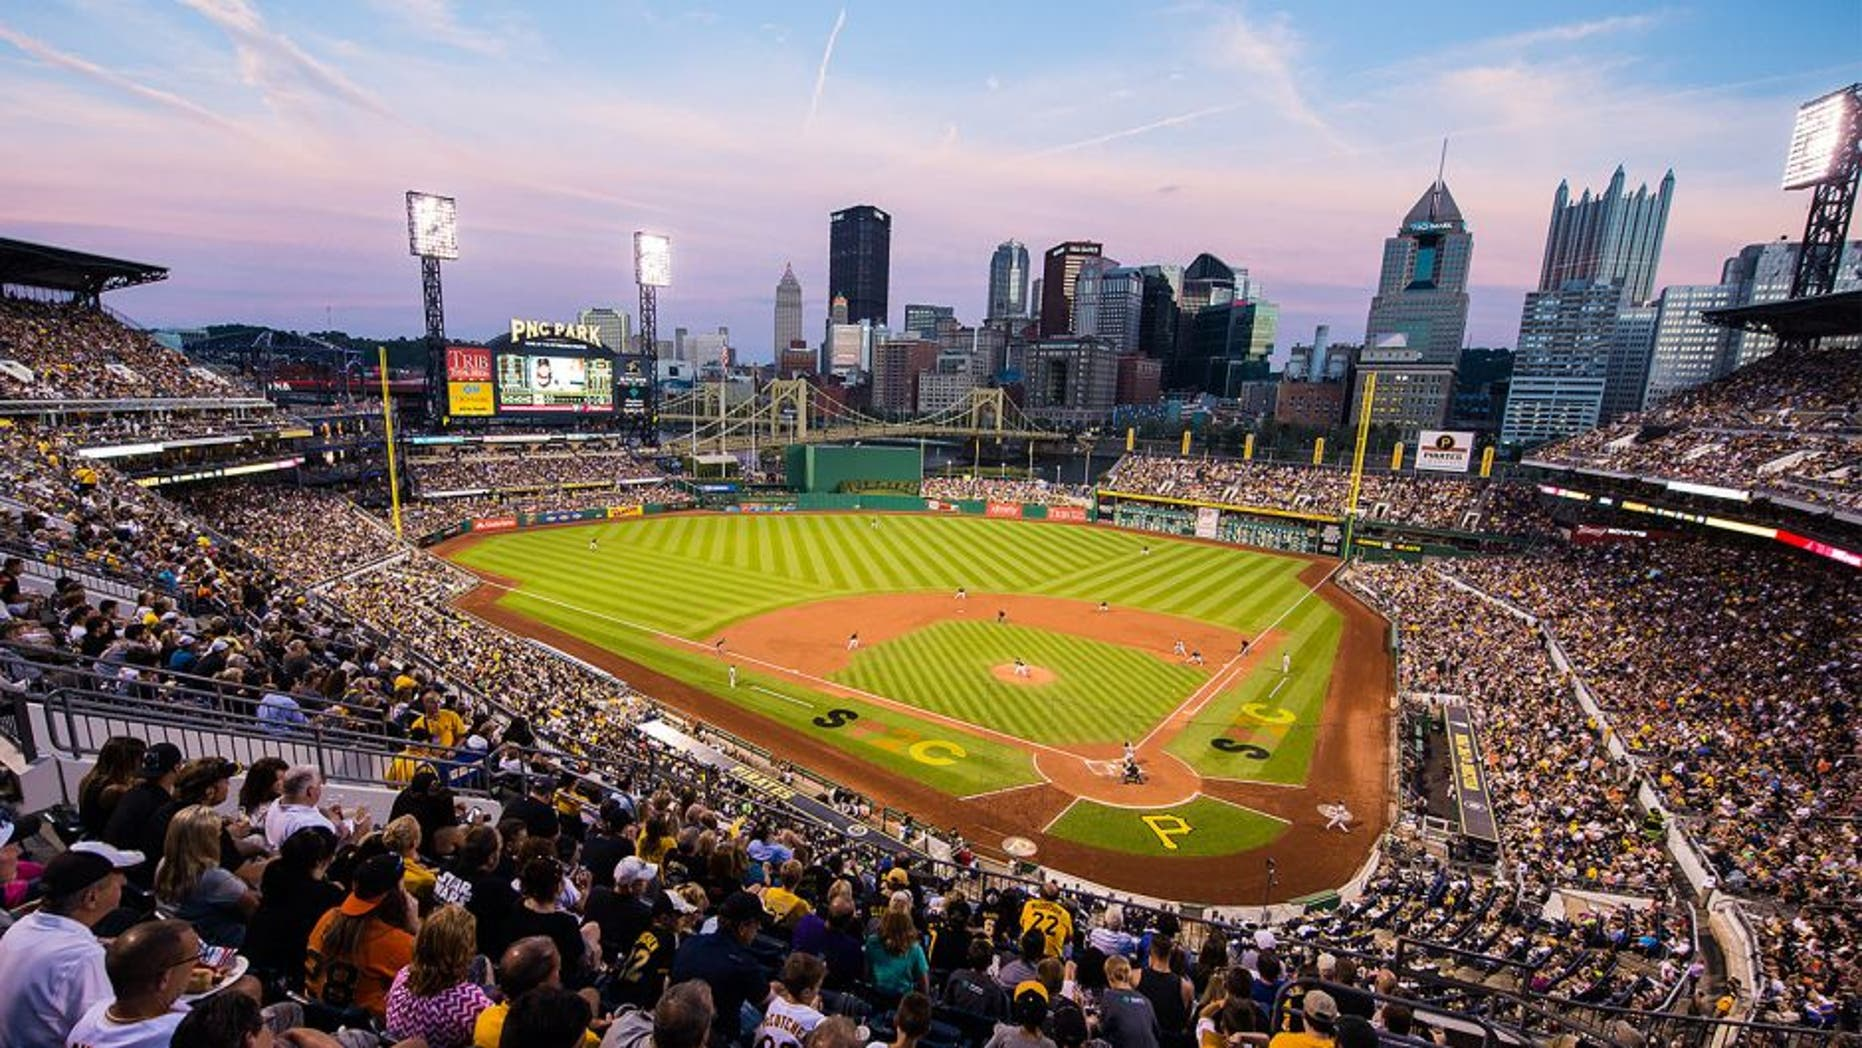 PITTSBURGH, PA - AUGUST 21: A general view of PNC Park from the upper duck at dusk during the game between the Pittsburgh Pirates and the San Francisco Giants at PNC Park on August 21, 2015 in Pittsburgh,Pennsylvania. (Photo by Rob Tringali/SportsChrome/Getty Images)